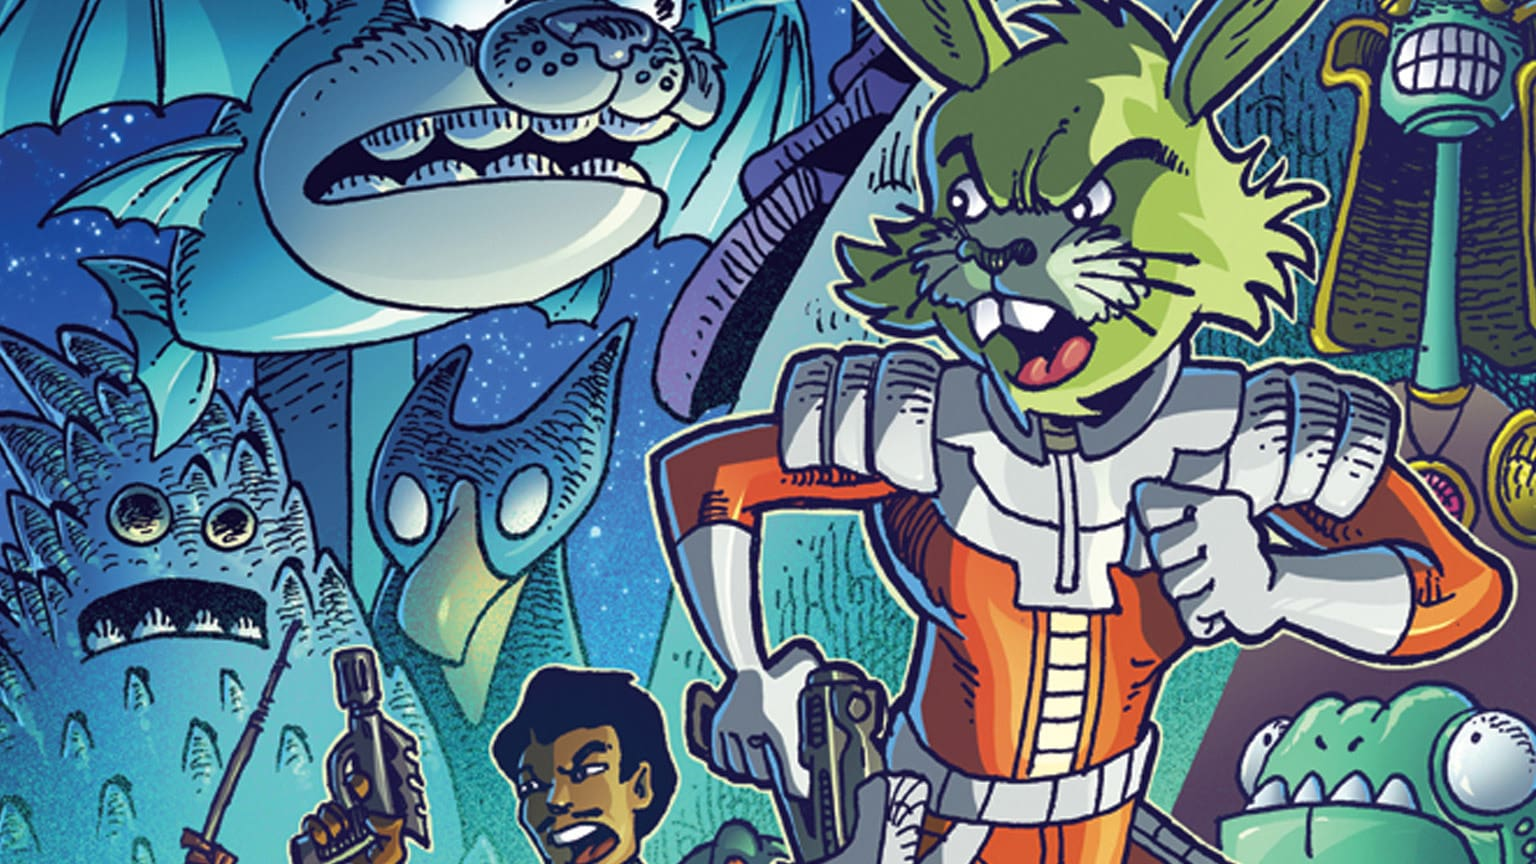 SWCC 2019: New Tales from Vader's Castle Series Announced, Jaxxon Returns, and More from the IDW Publishing Panel